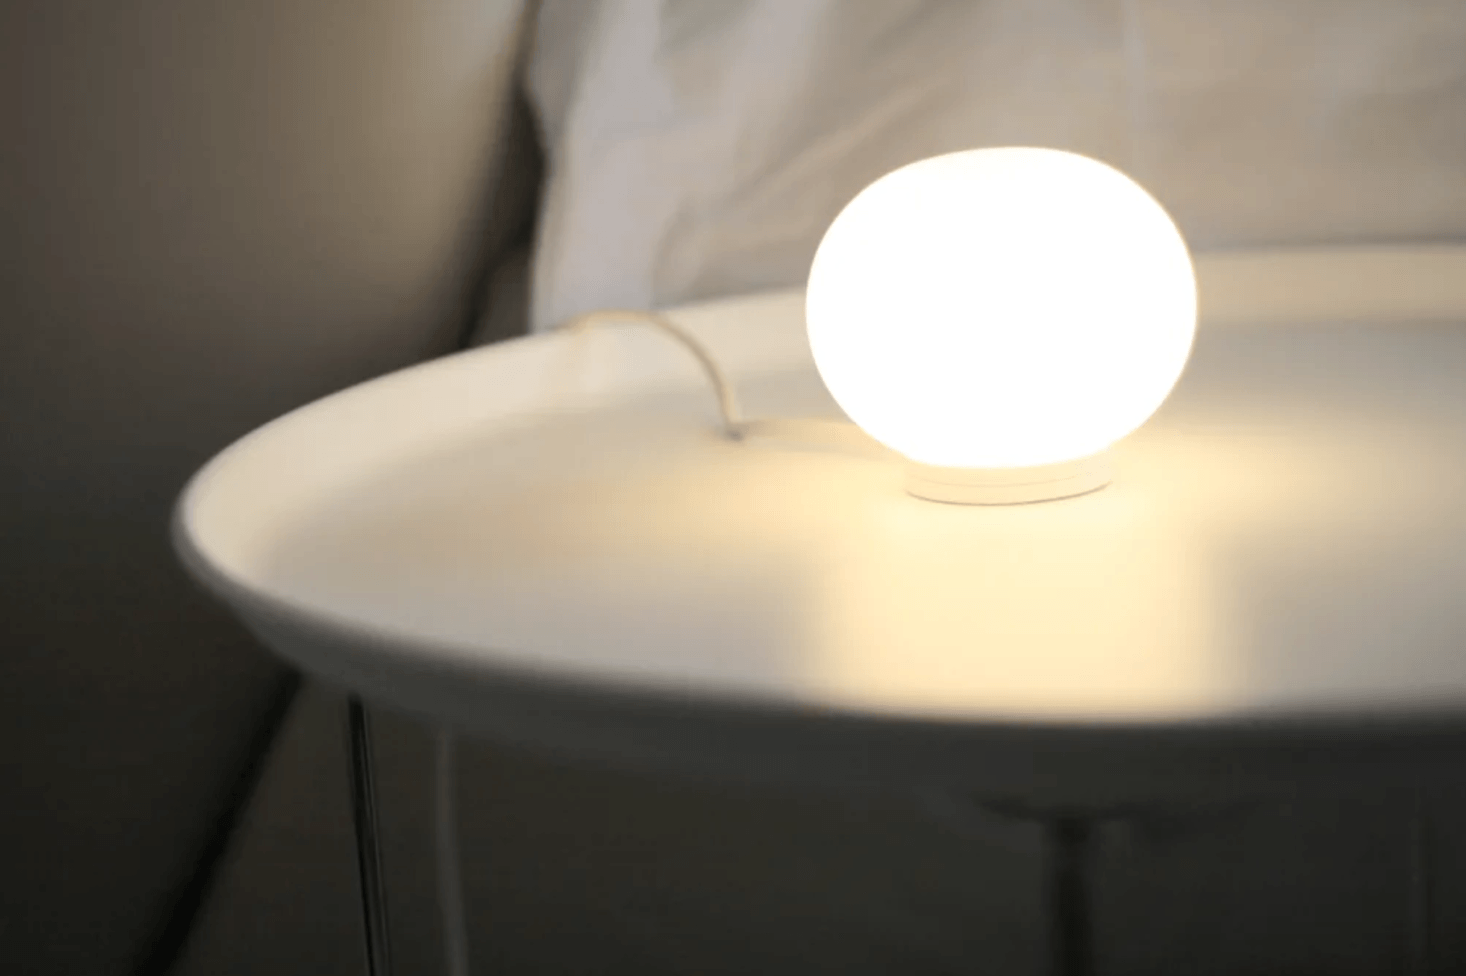 The FLOS Glo-Ball Mini T Table Lamp is a classic opal diffused glow lamp designed by Jasper Morrison. It&#8